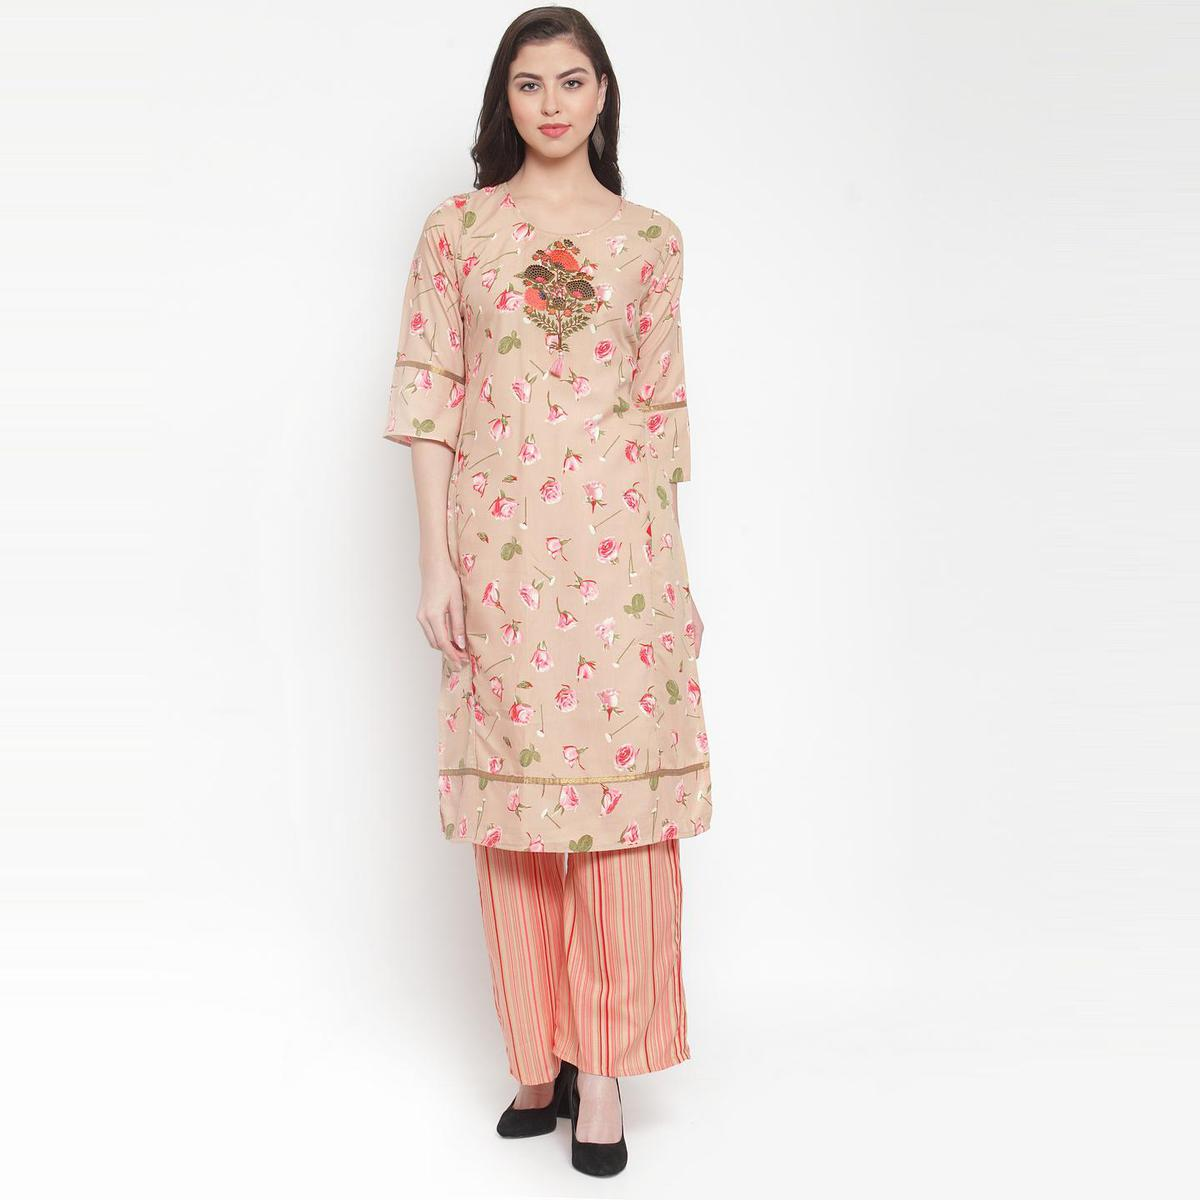 Aujjessa - Beige Pink Colored Casual Wear Floral Embroidered-Printed Rayon Kurti Palazzo Set